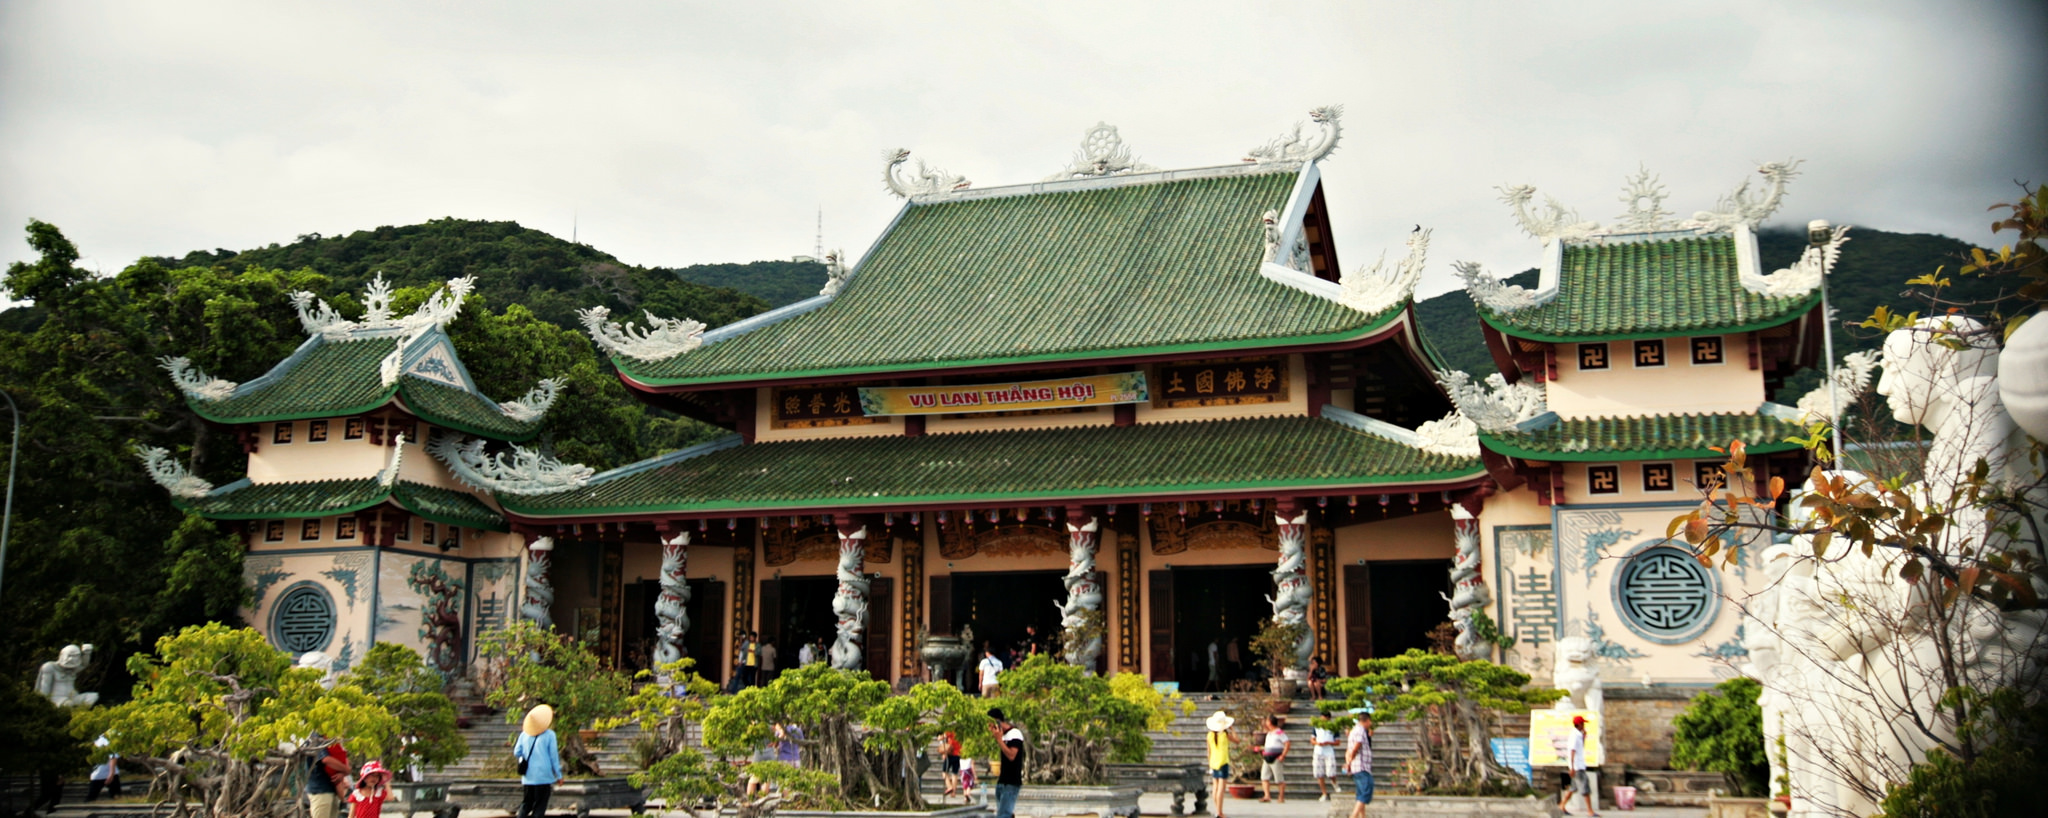 temple at Linh Ung Pagoda, Vietnam